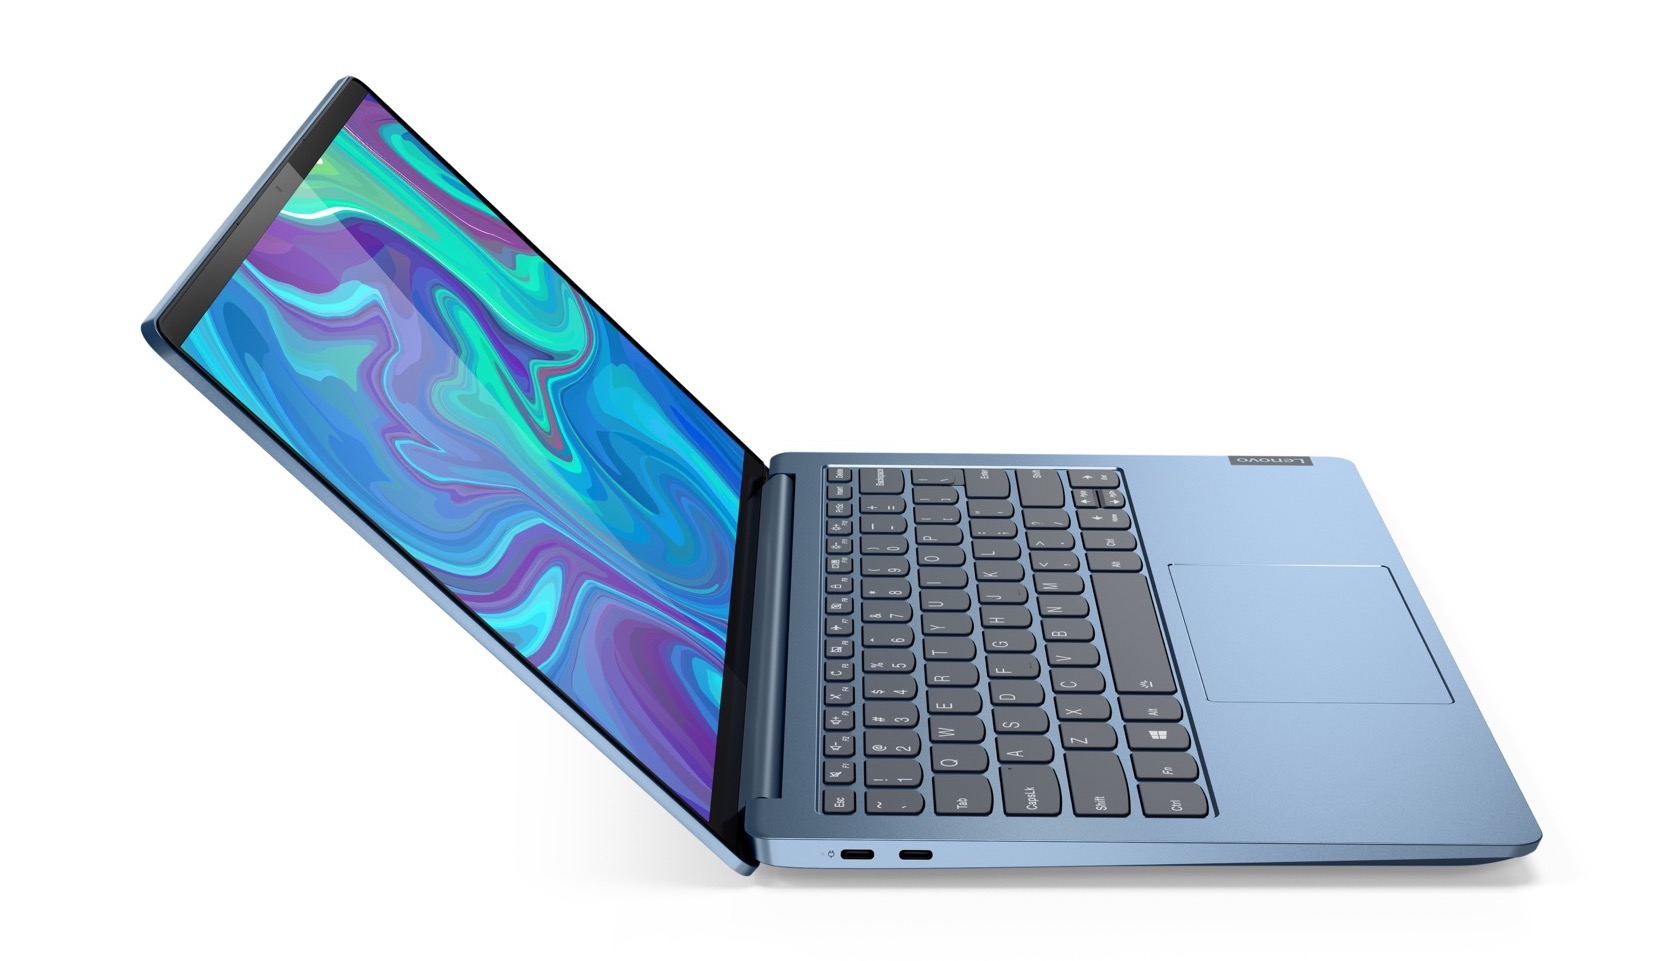 Lenovo IdeaPad S540 puts up to six-core i7 in a 13-inch